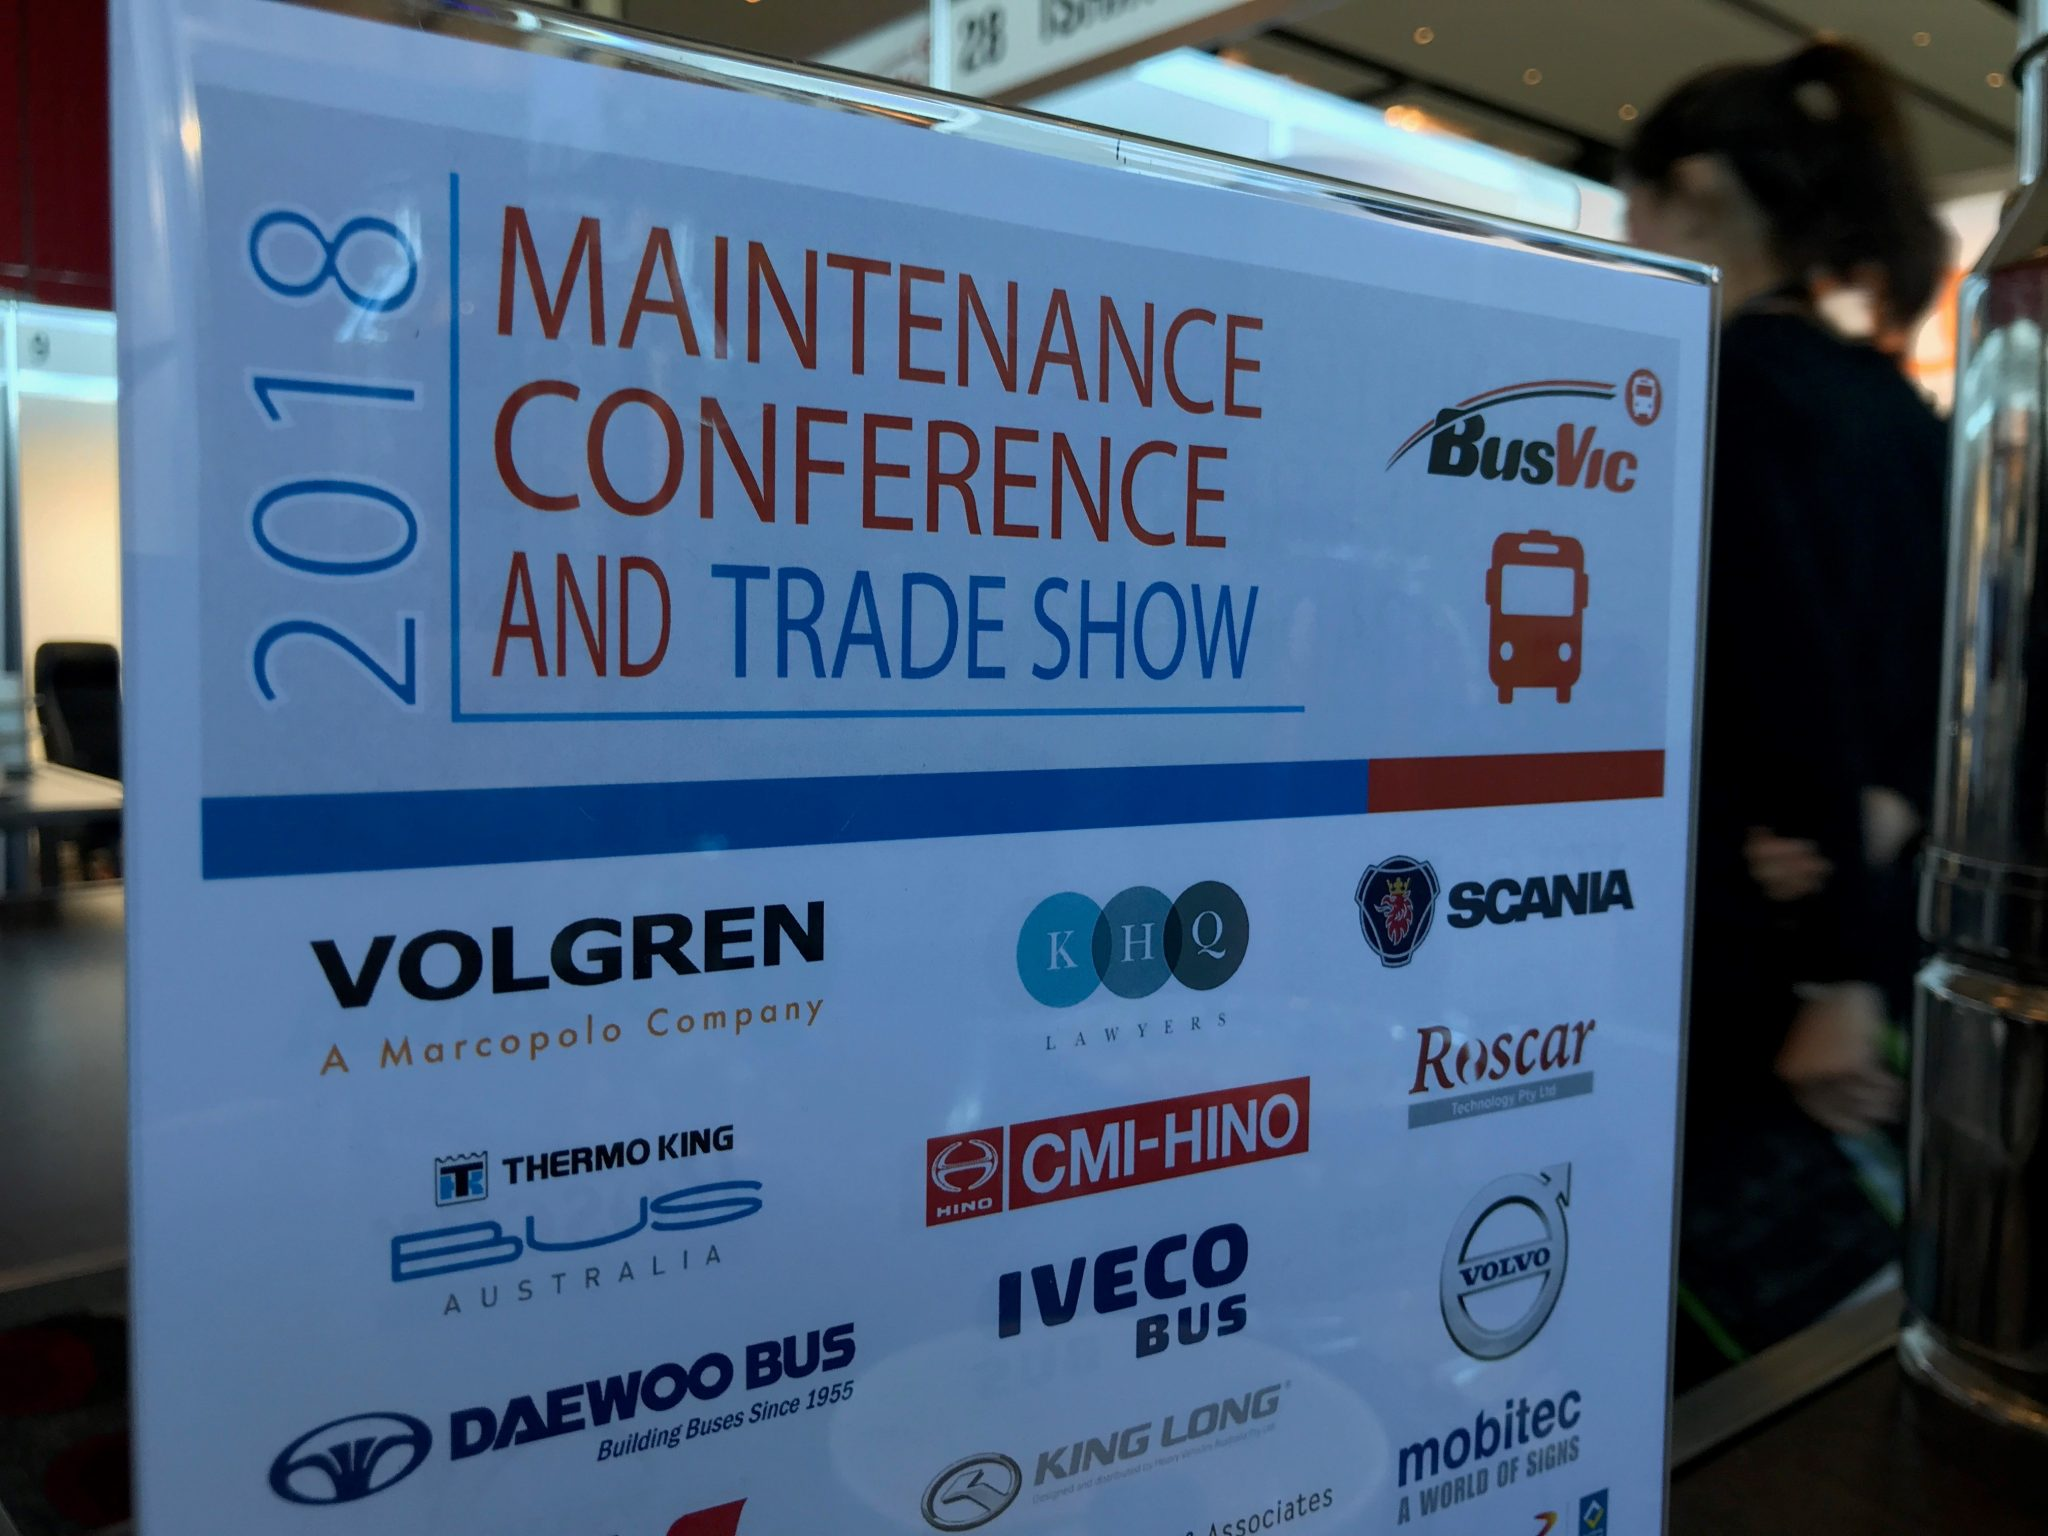 2018 BusVic Maintenance Conference and Trade Show Pullman Albert Park Melbourne